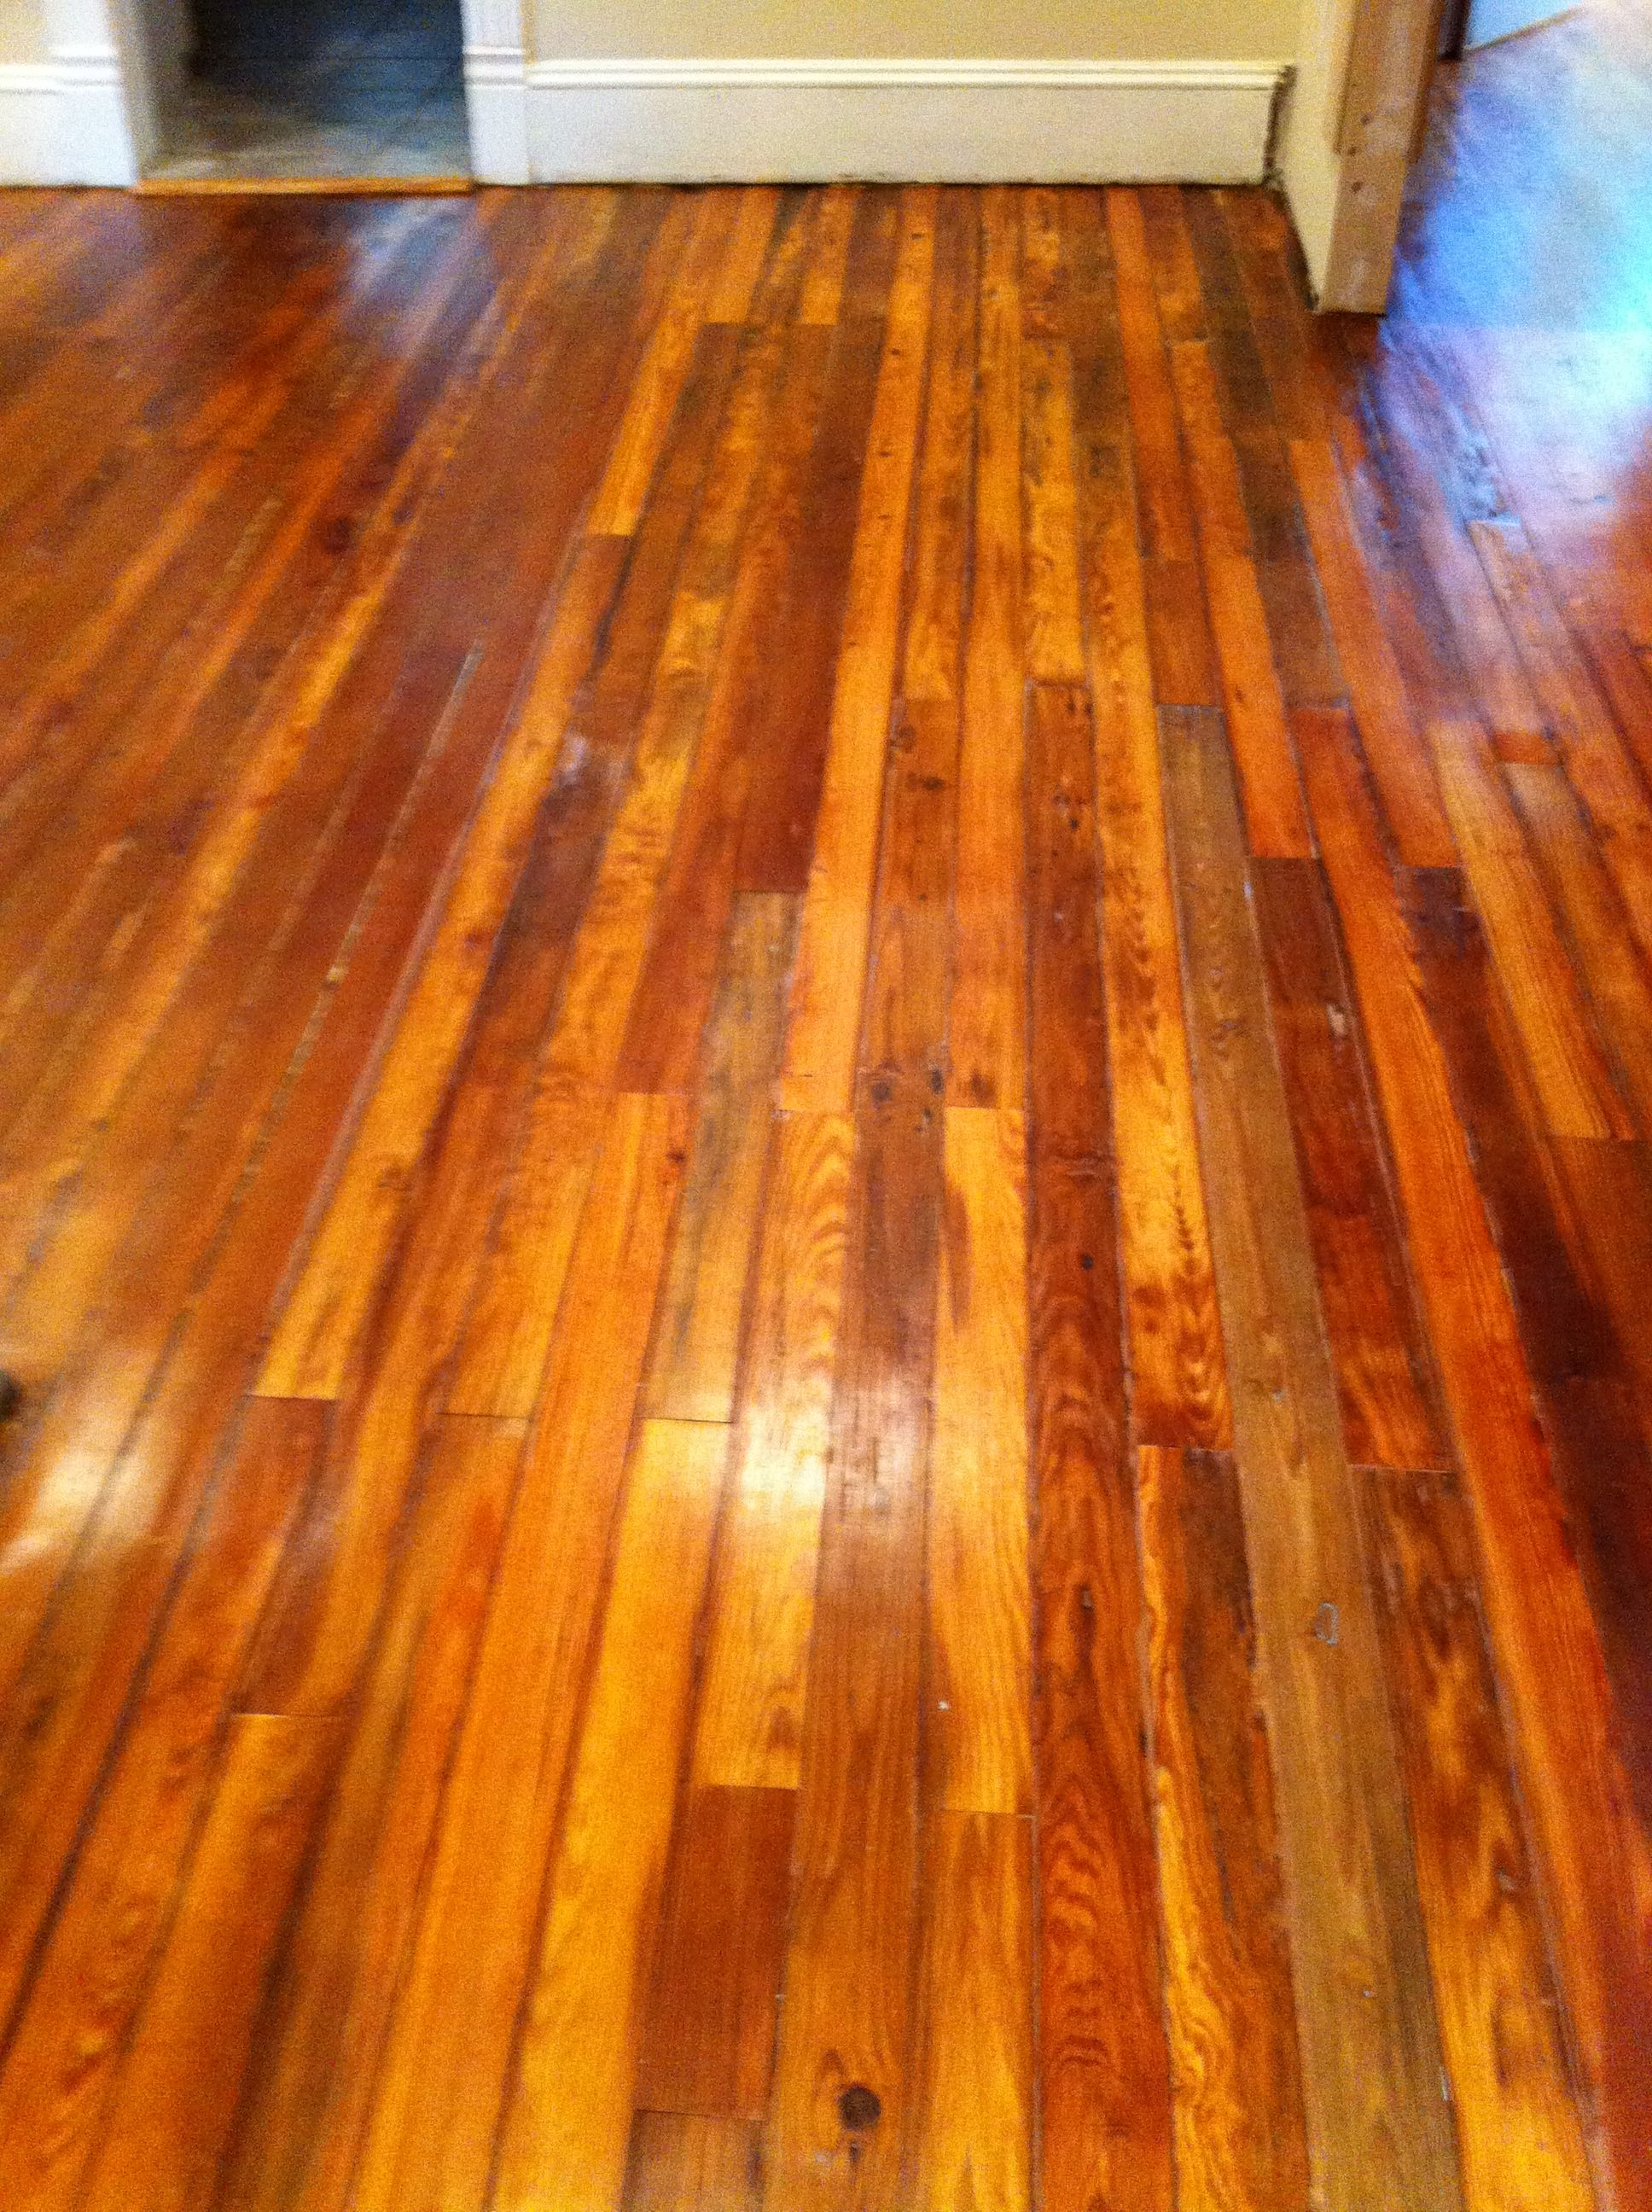 Refinished Old Yellow Pine Floors Google Search